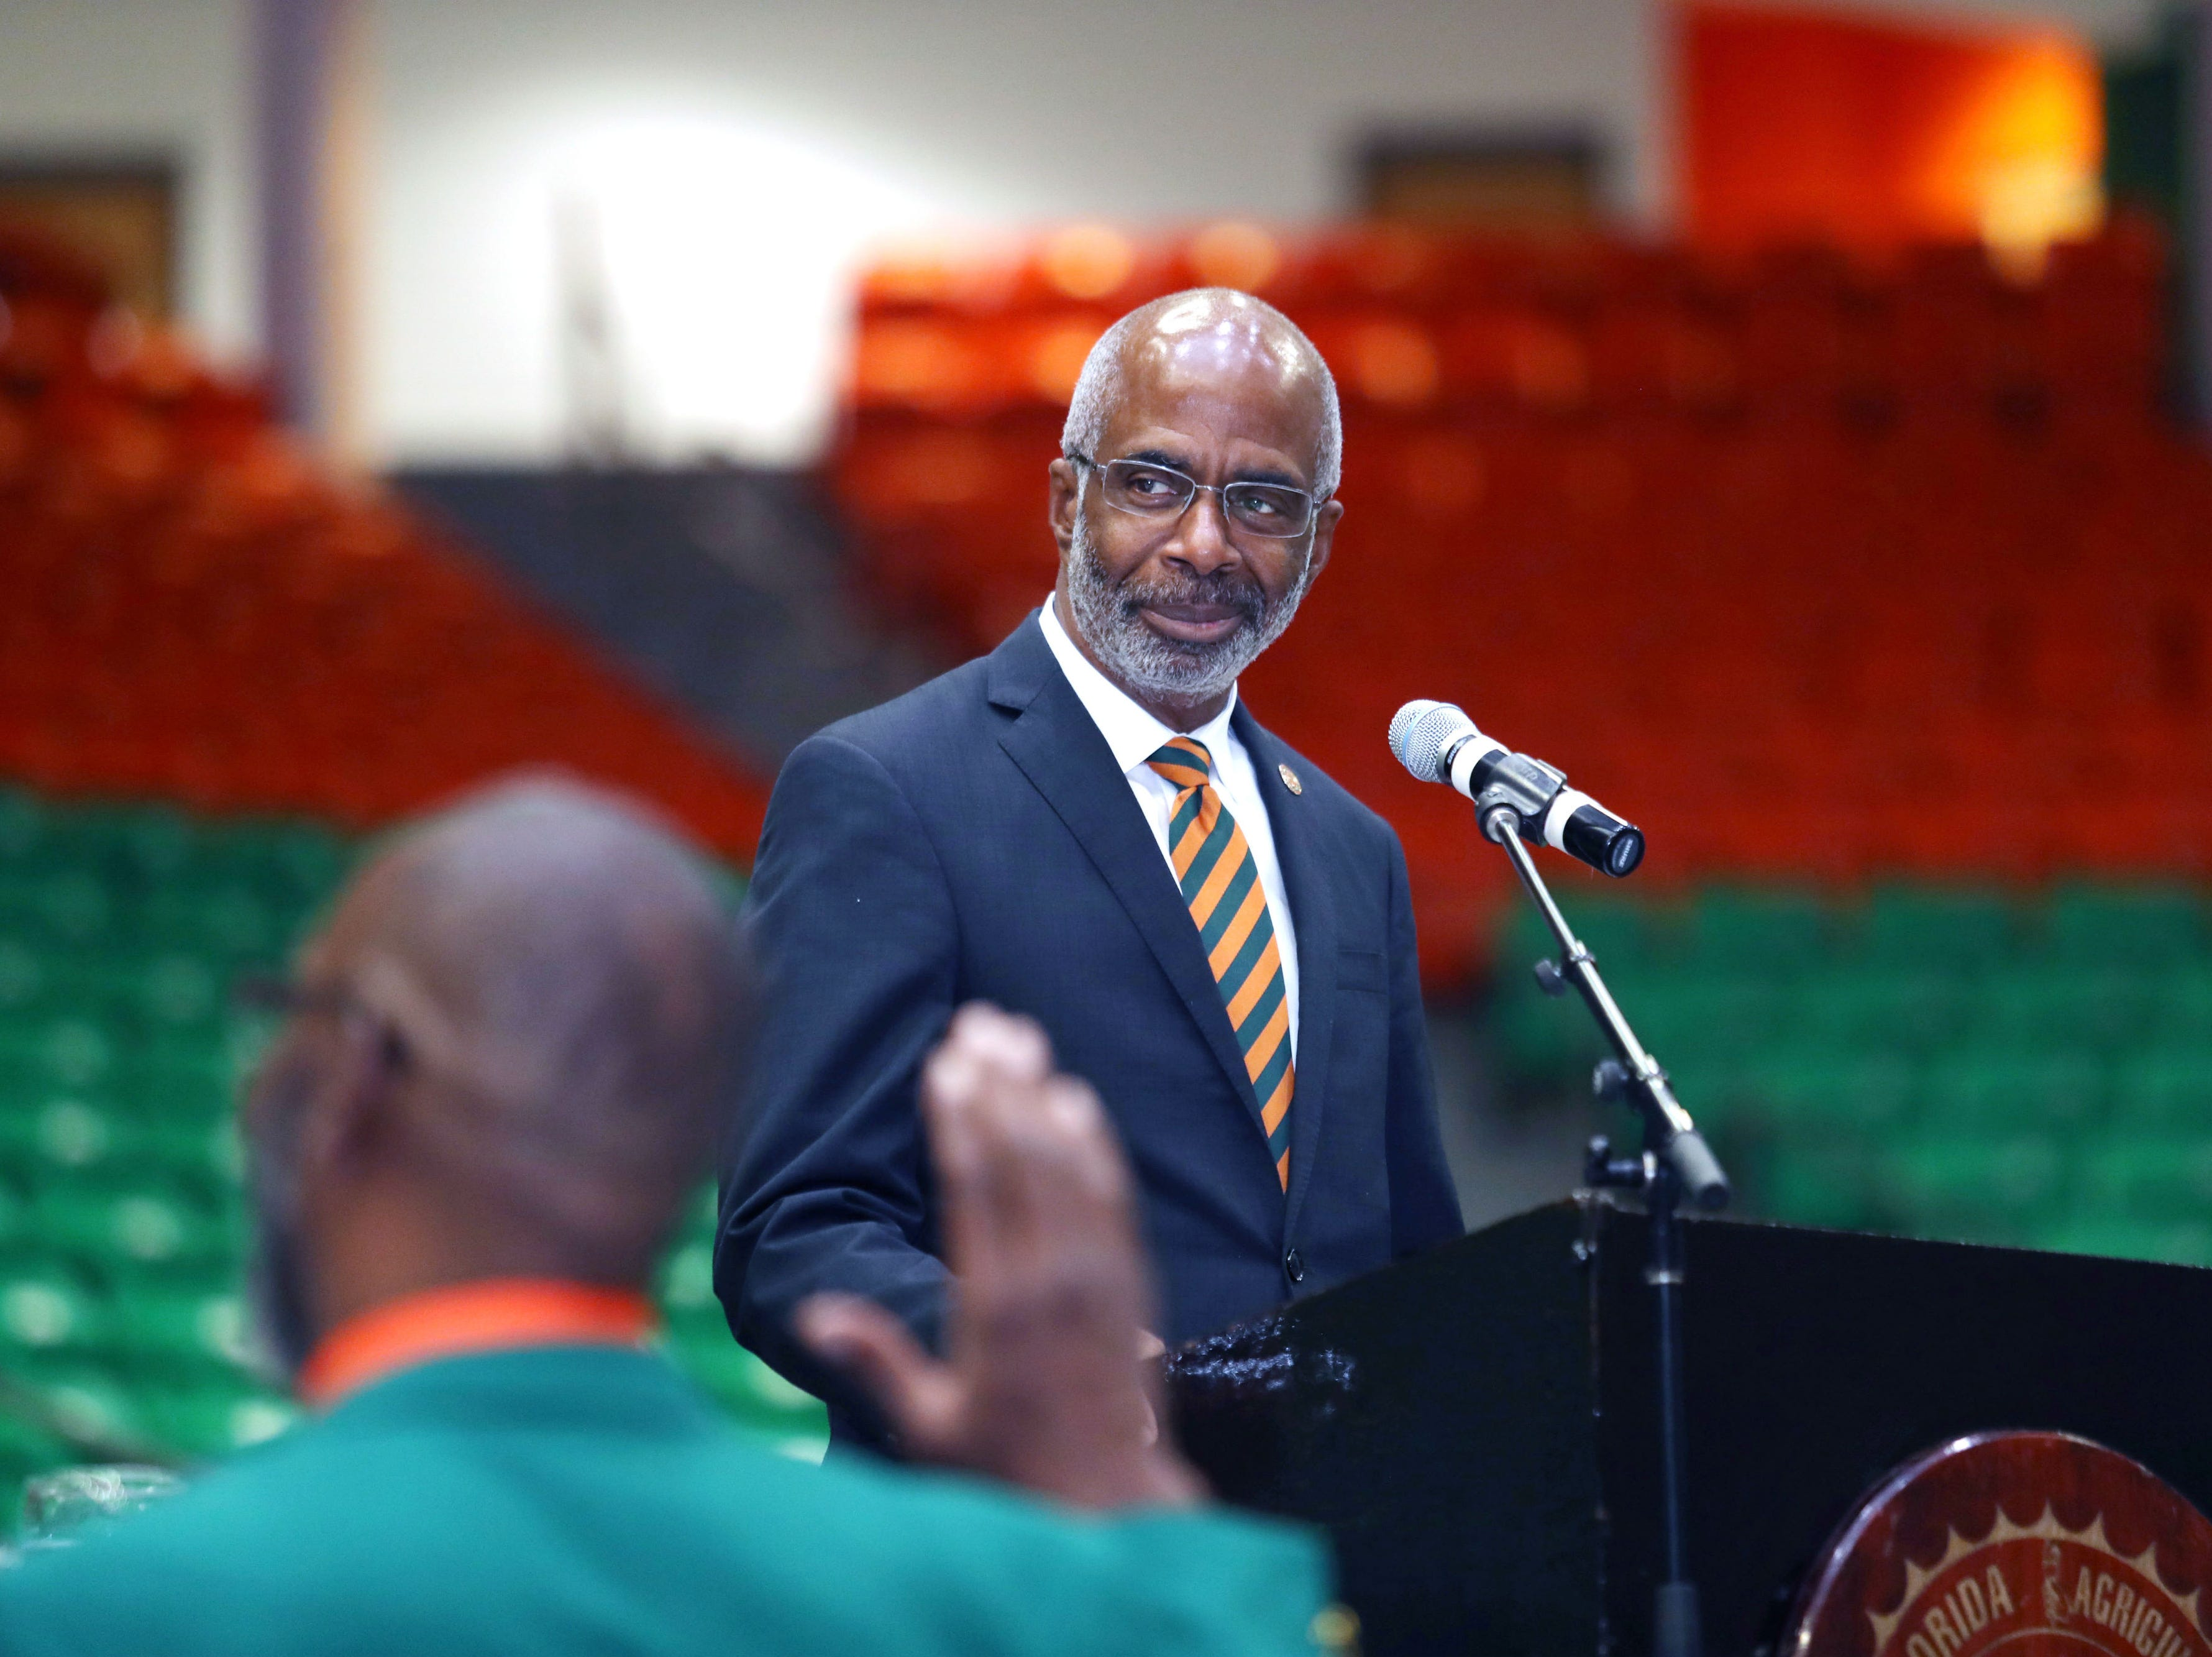 FAMU president Dr. Larry Robinson gives the oath of enshrinement to the Class of 2018.